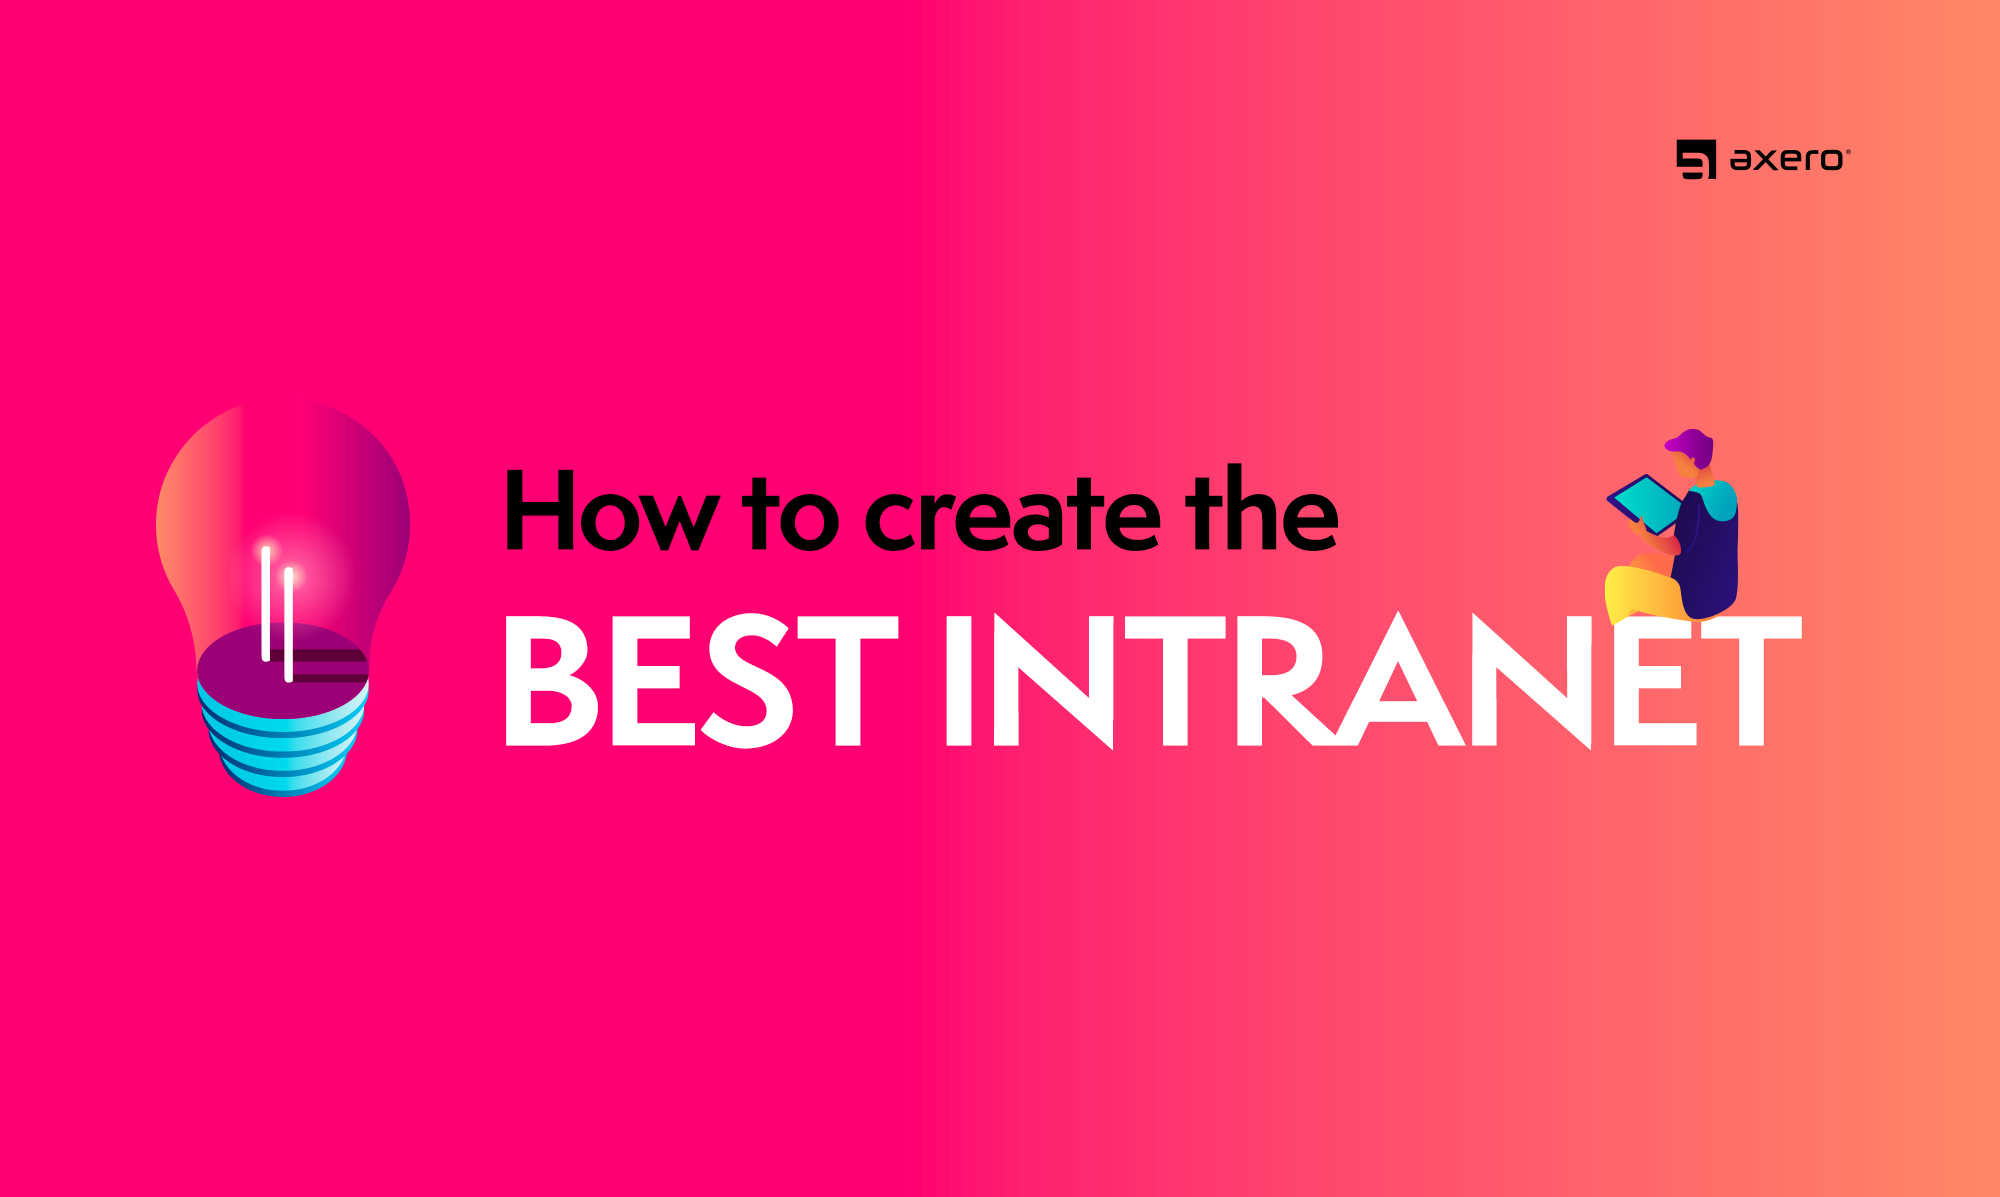 37 Hot Intranet Ideas to Create the Best Company Intranet